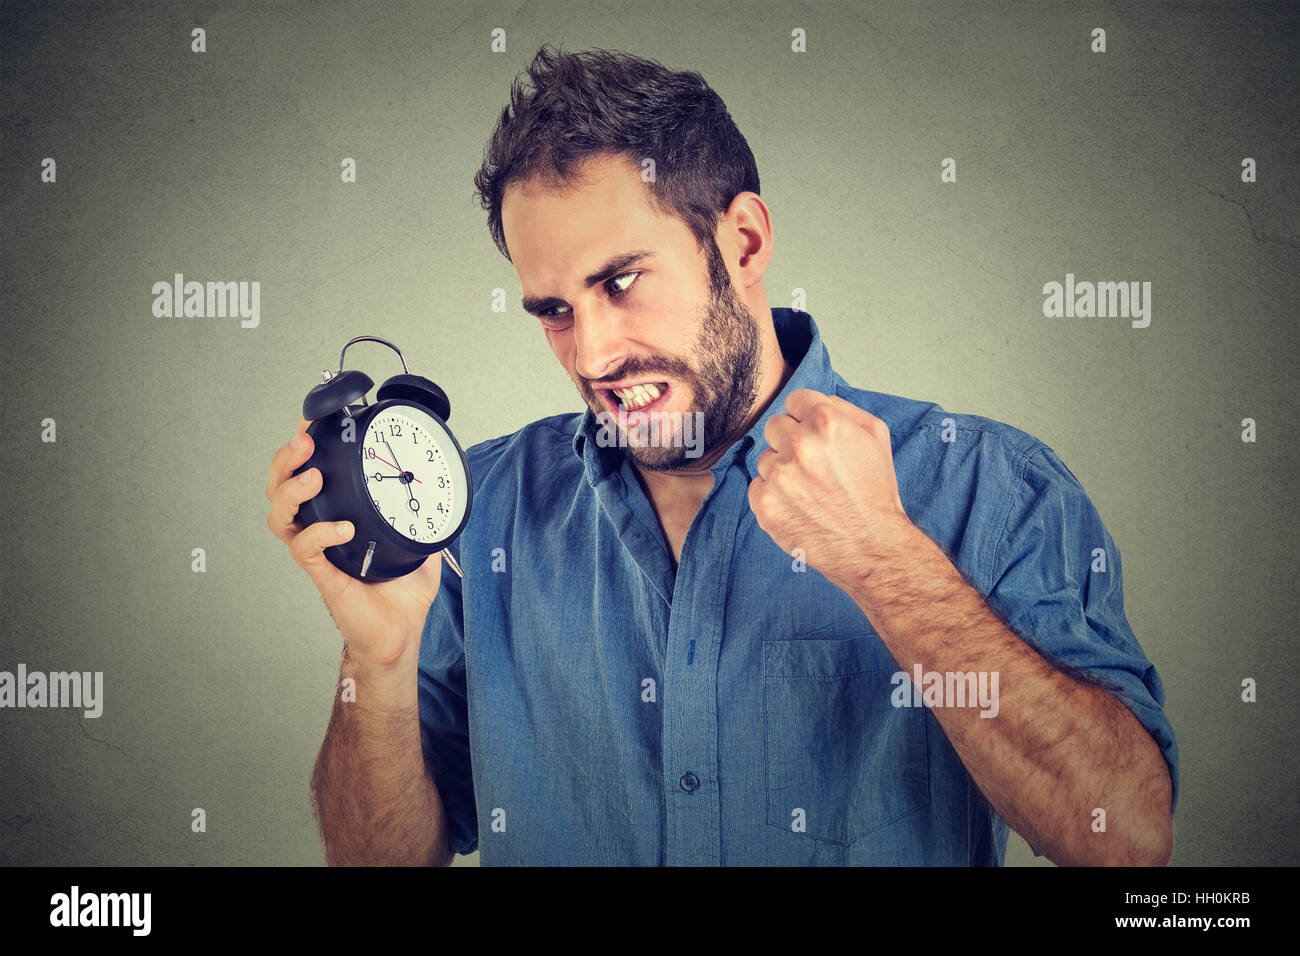 Portrait upset angry young man screaming at alarm clock isolated on gray wall background. Employee running late. - Stock Image